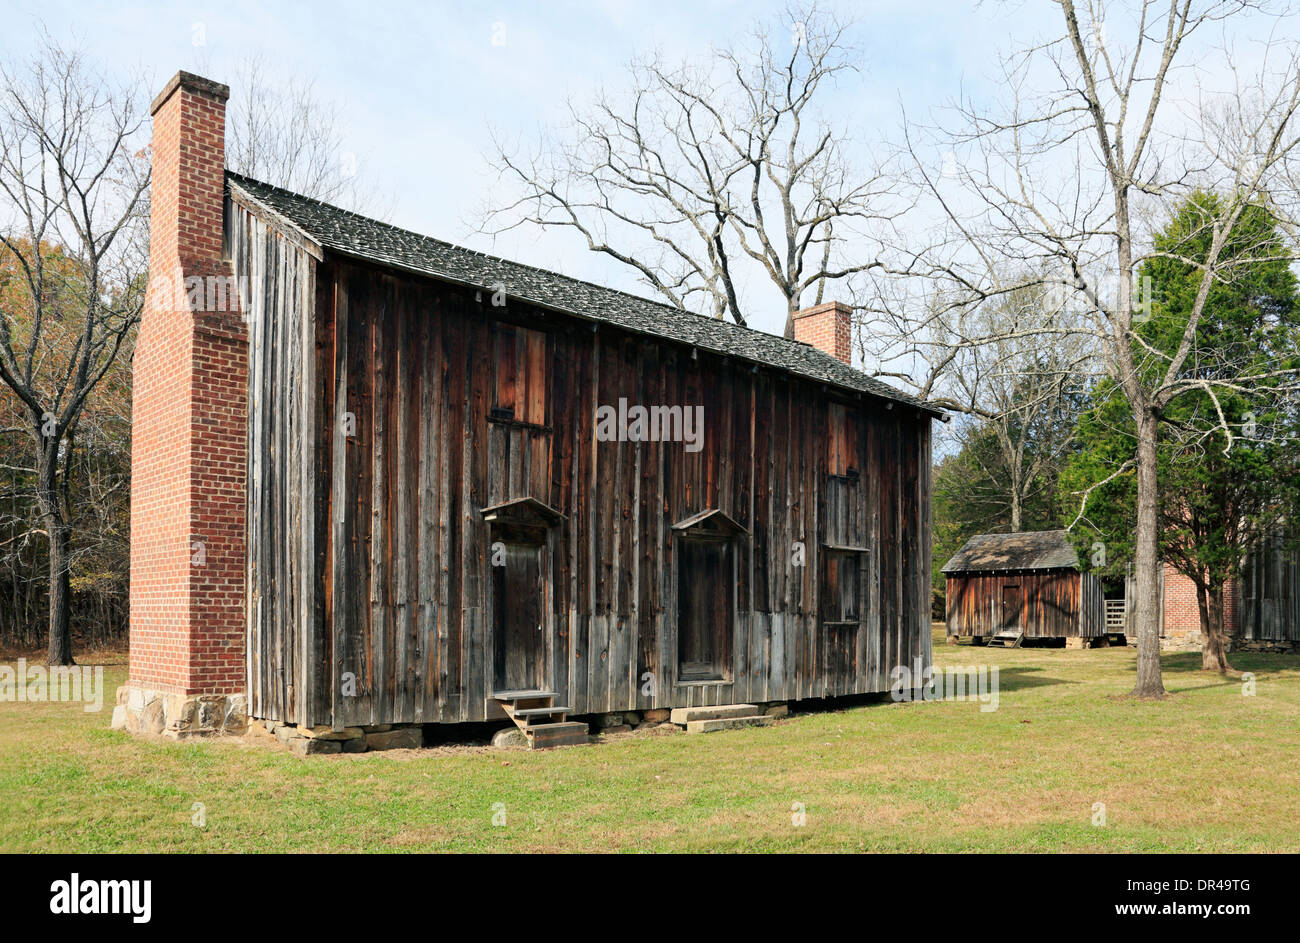 Slave houses at Stagville Plantation. A historic site in Durham, North Carolina. - Stock Image